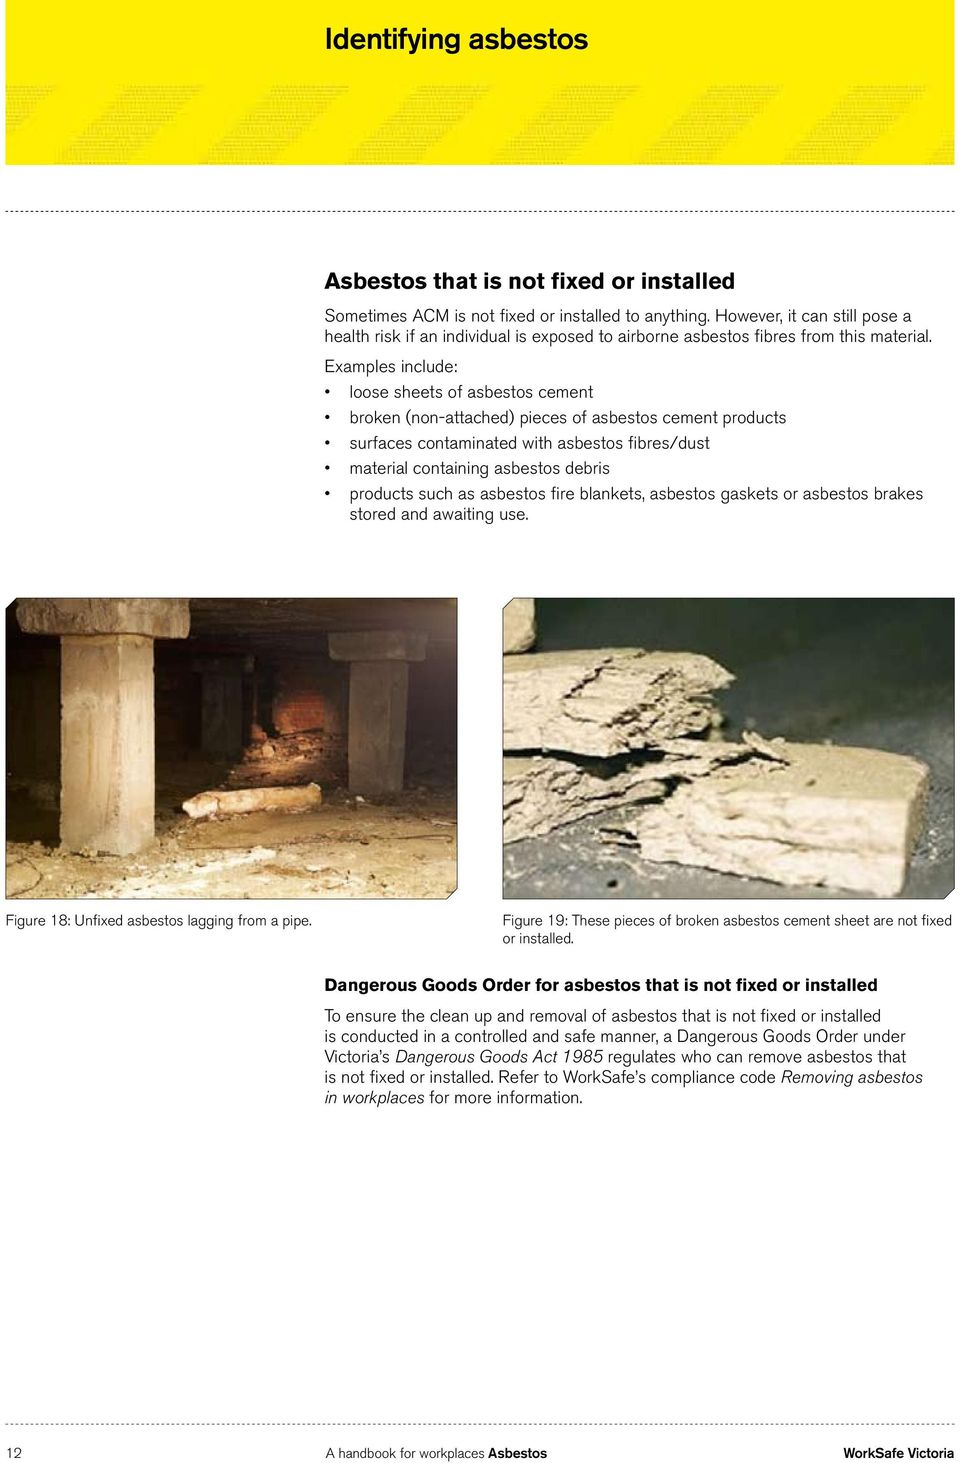 Examples include: loose sheets of asbestos cement broken (non-attached) pieces of asbestos cement products surfaces contaminated with asbestos fibres/dust material containing asbestos debris products